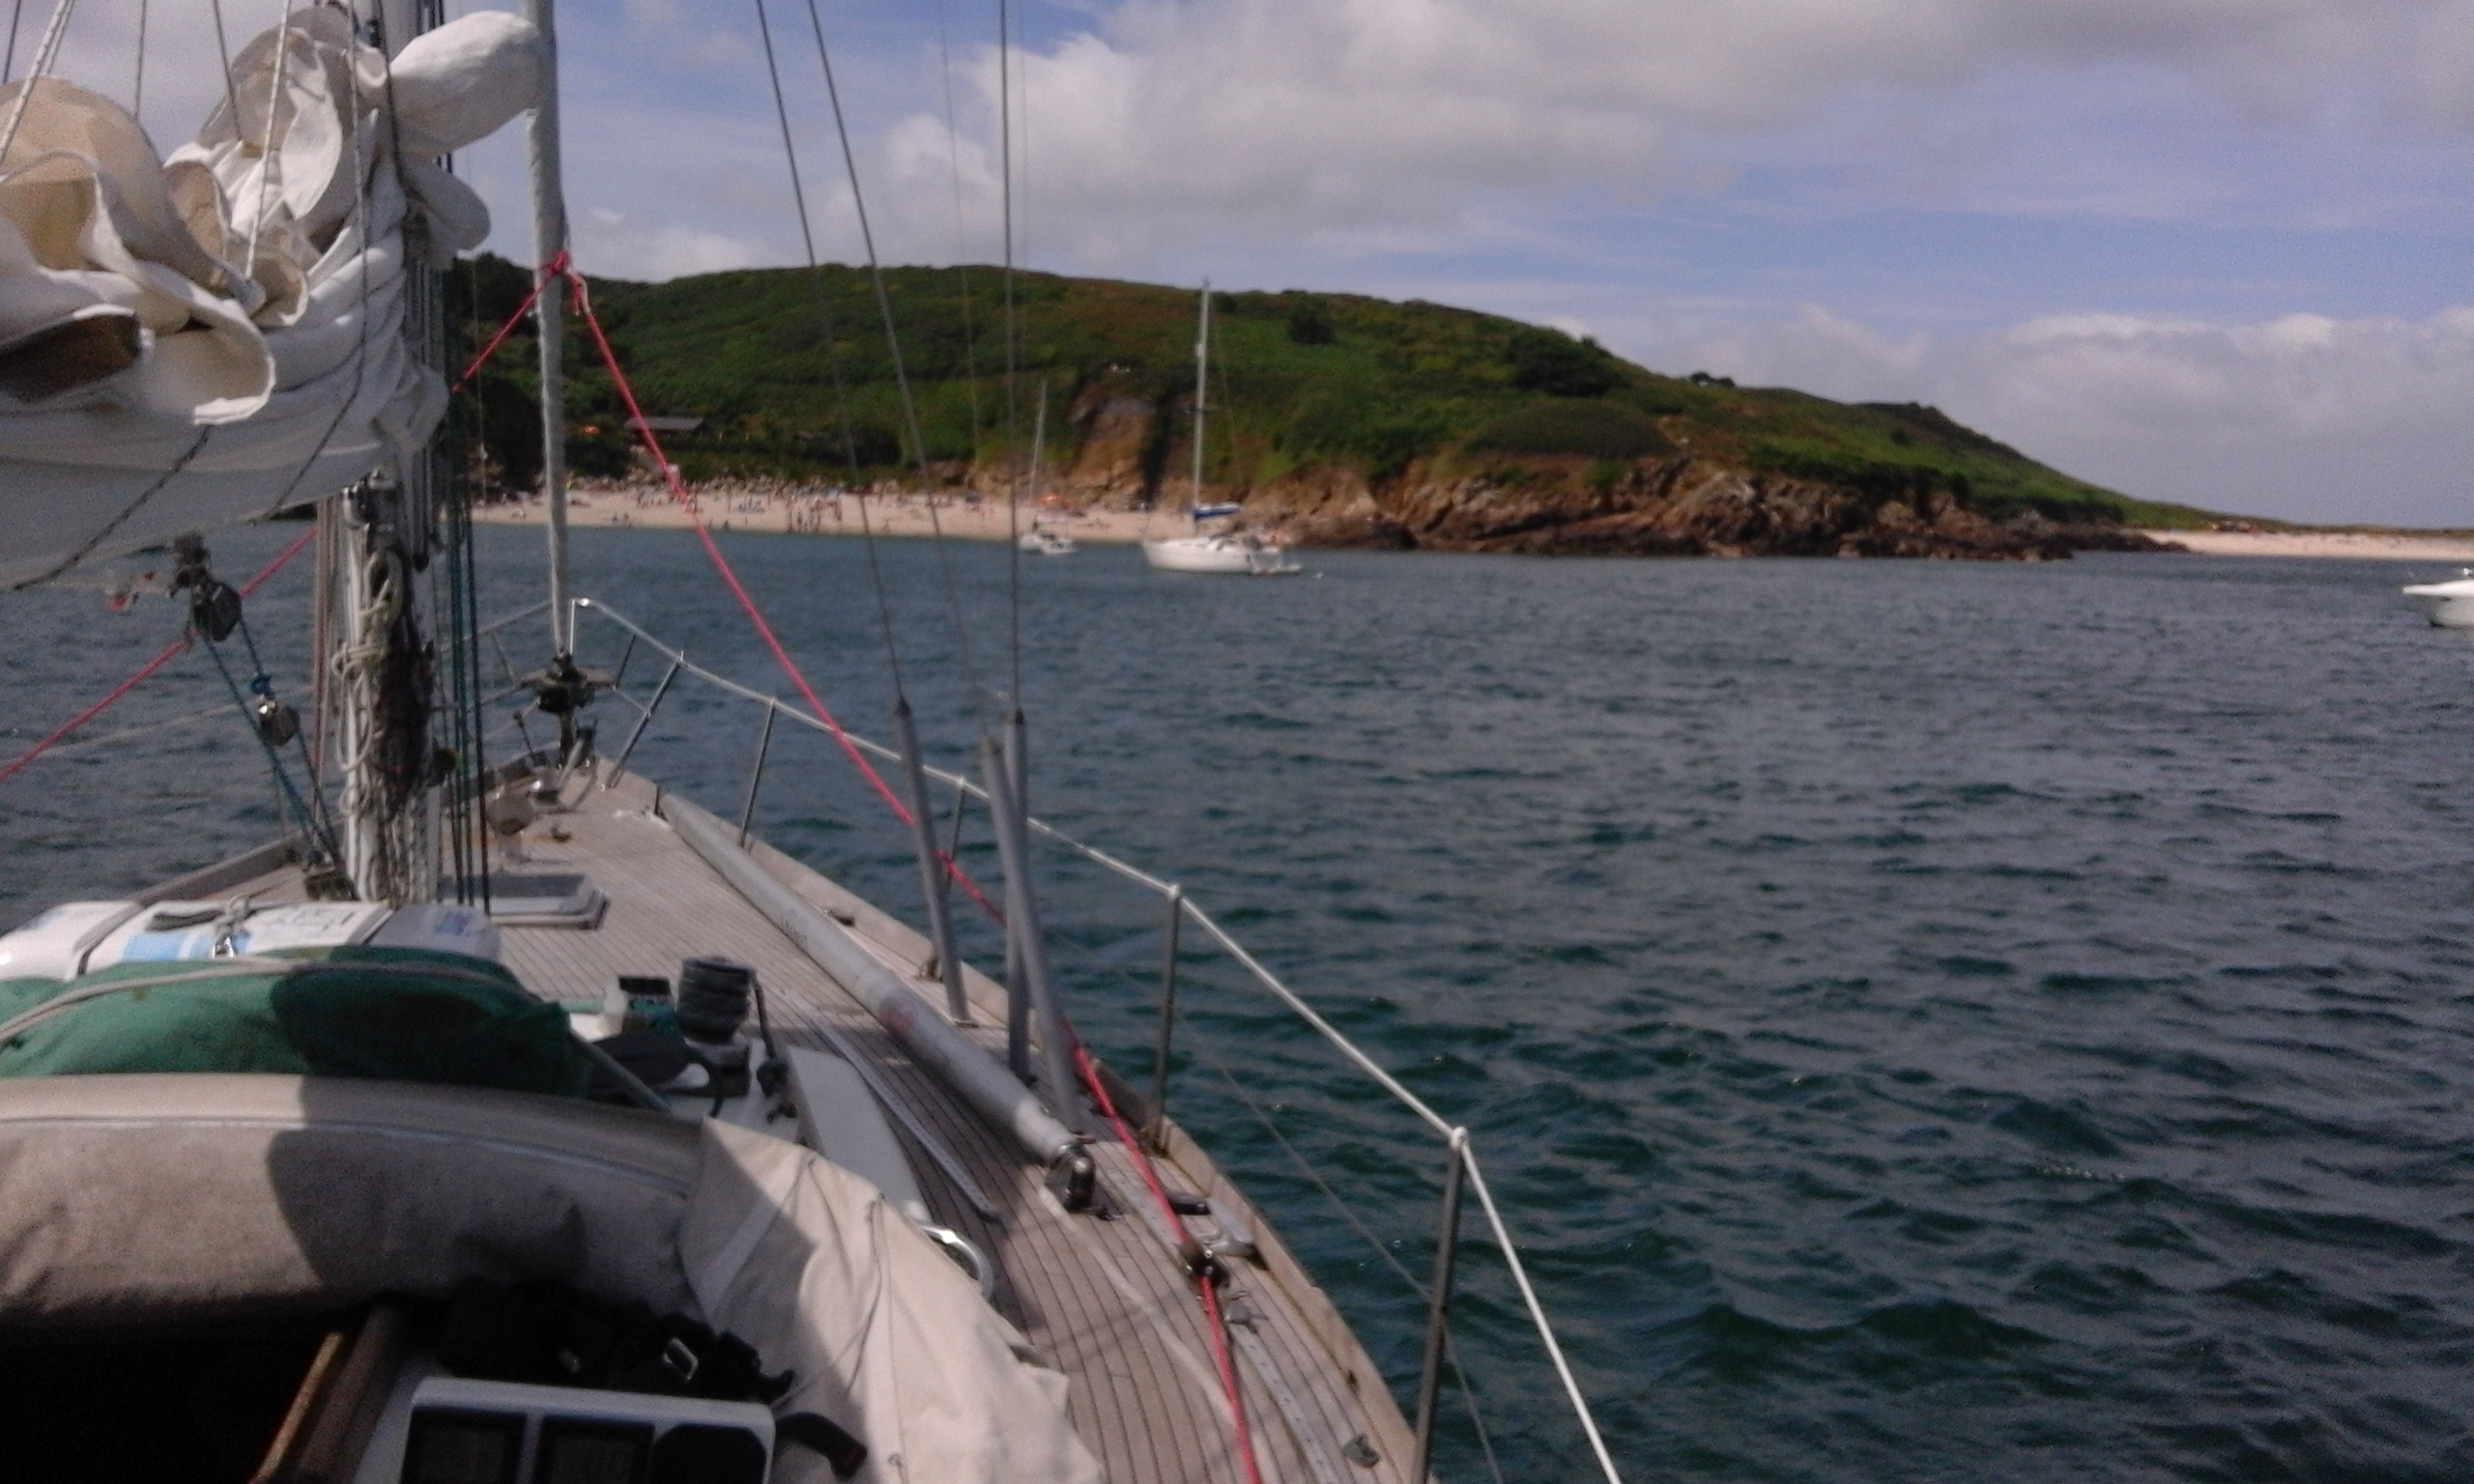 Lunch anchorage off Shell beach, Herm